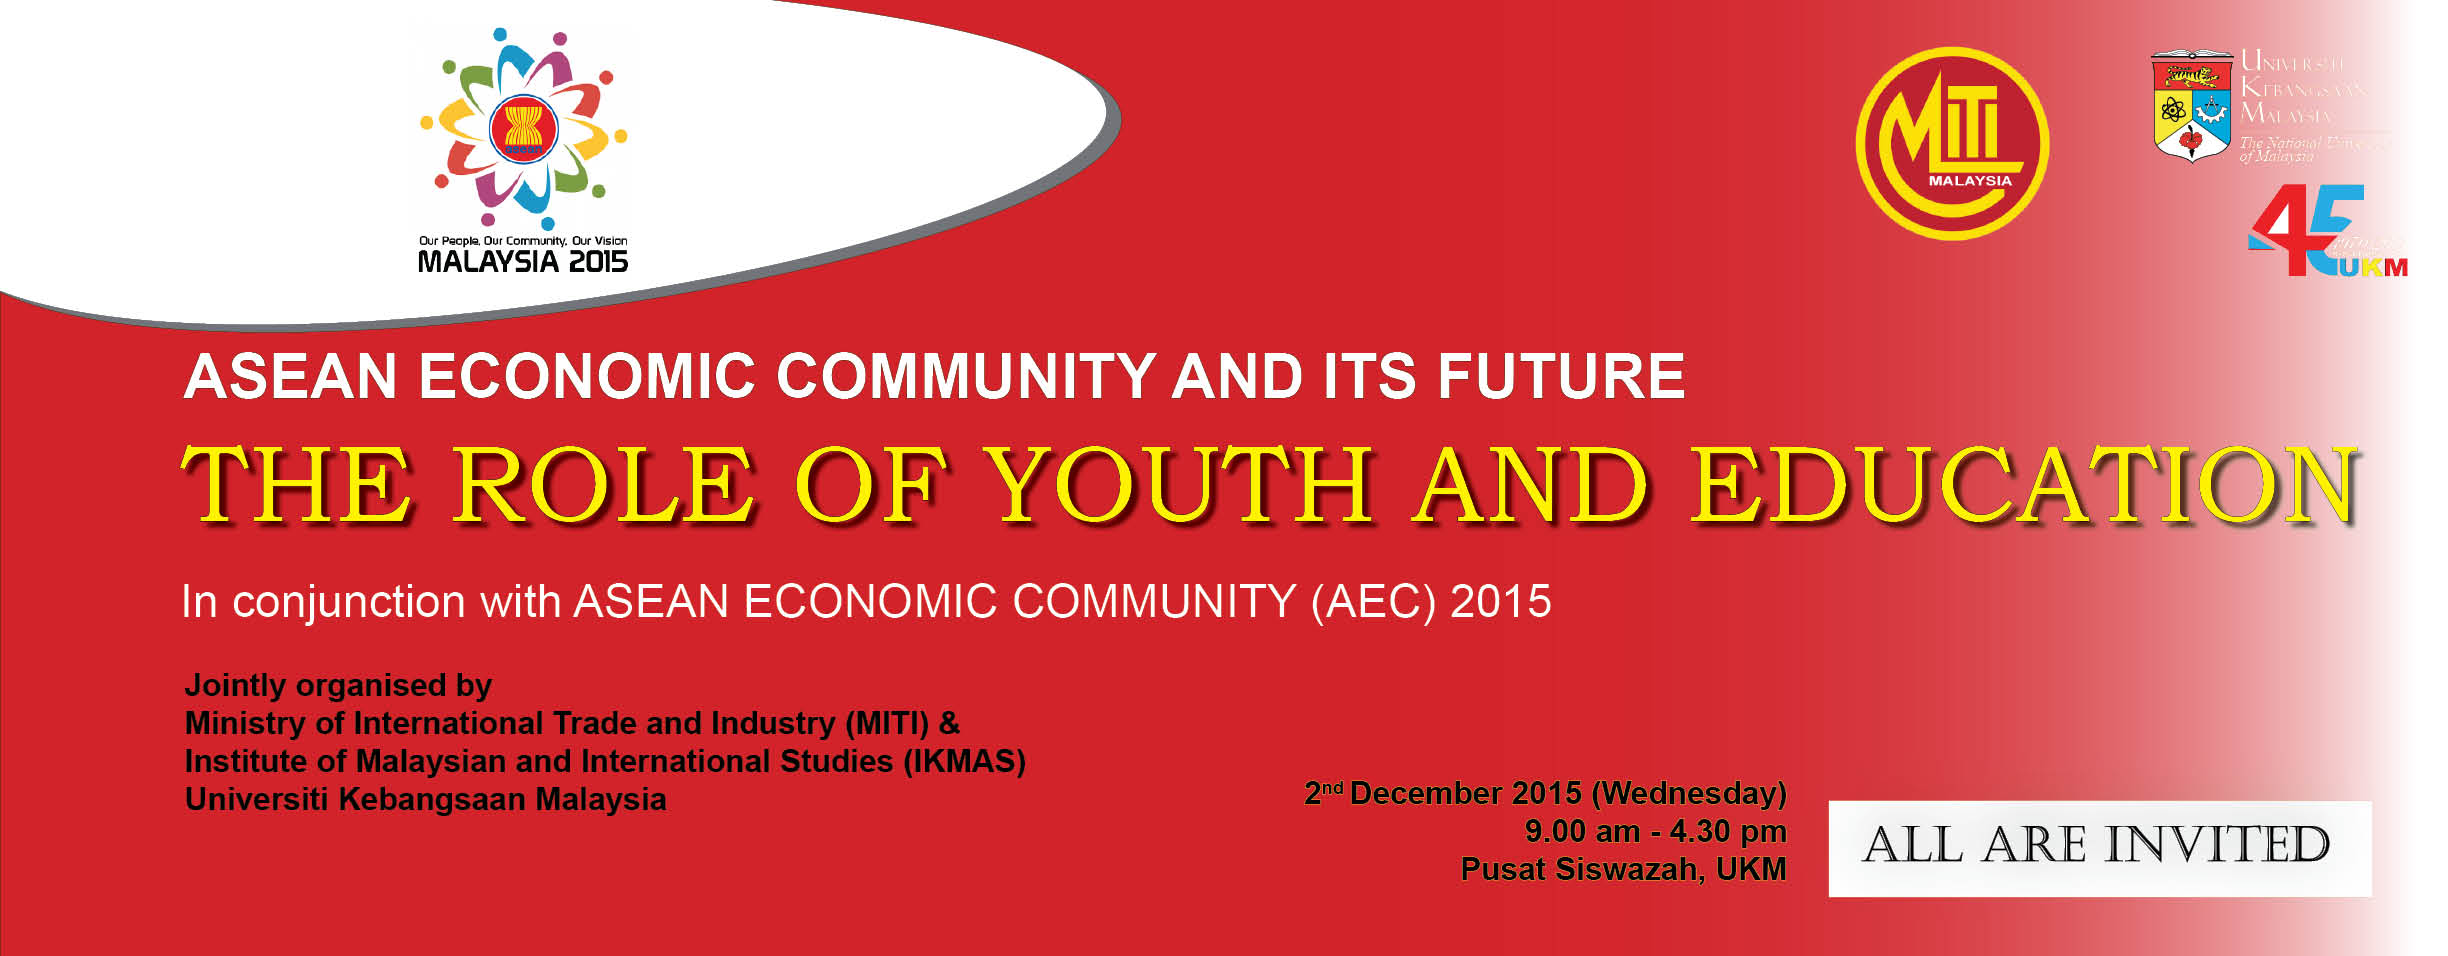 ASEAN ECONOMIC COMMUNITY AND ITS FUTURE: THE ROLE OF YOUTH AND EDUCATION